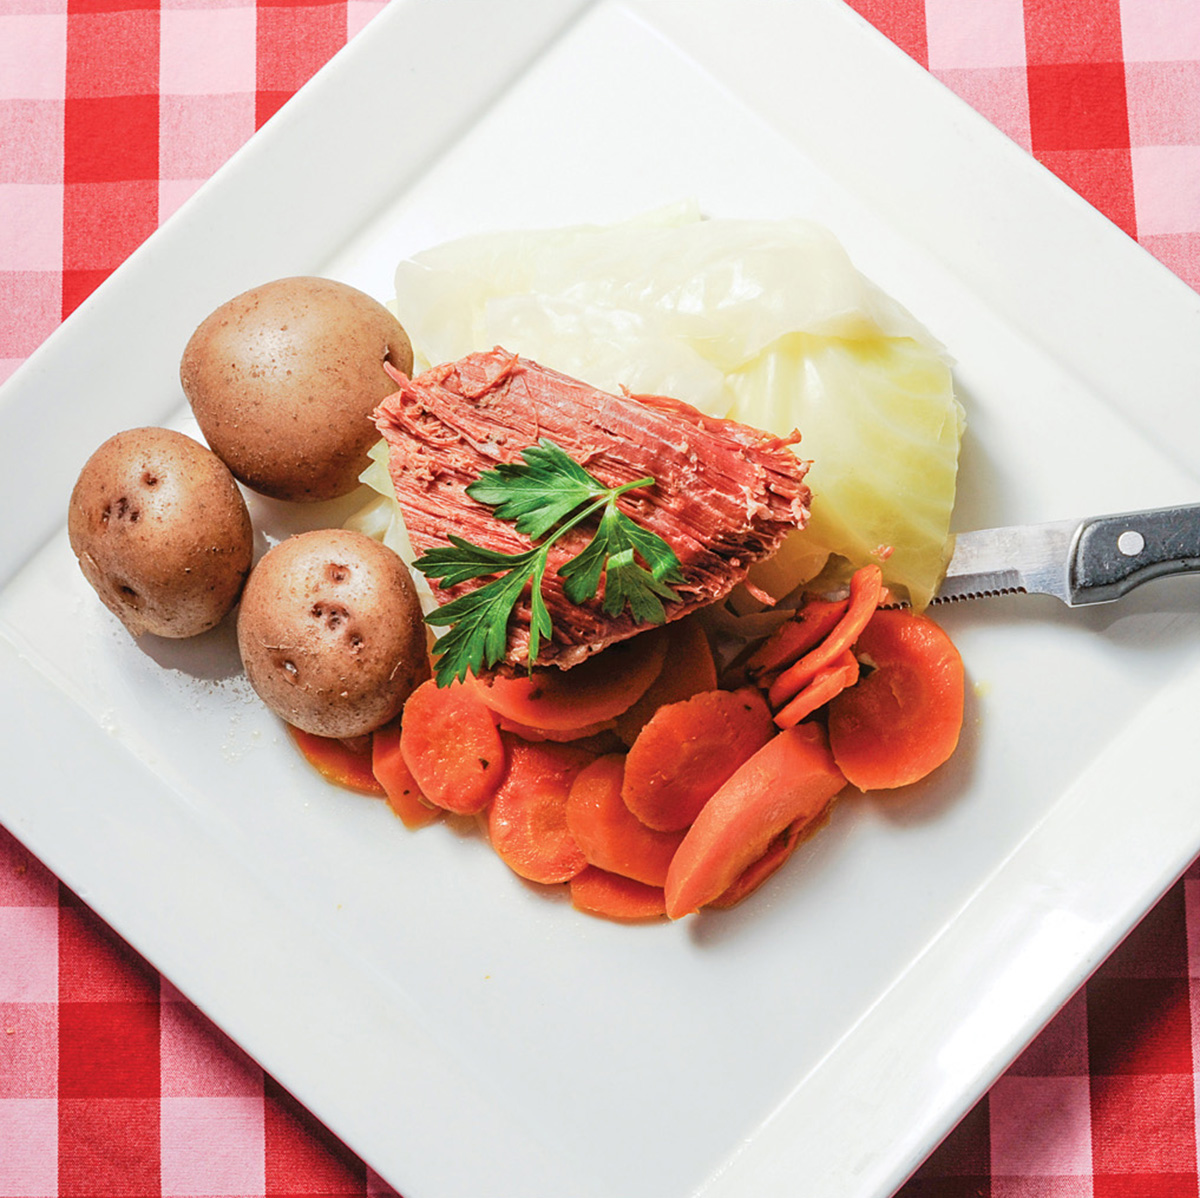 Boiled dinner at Durgin-Park